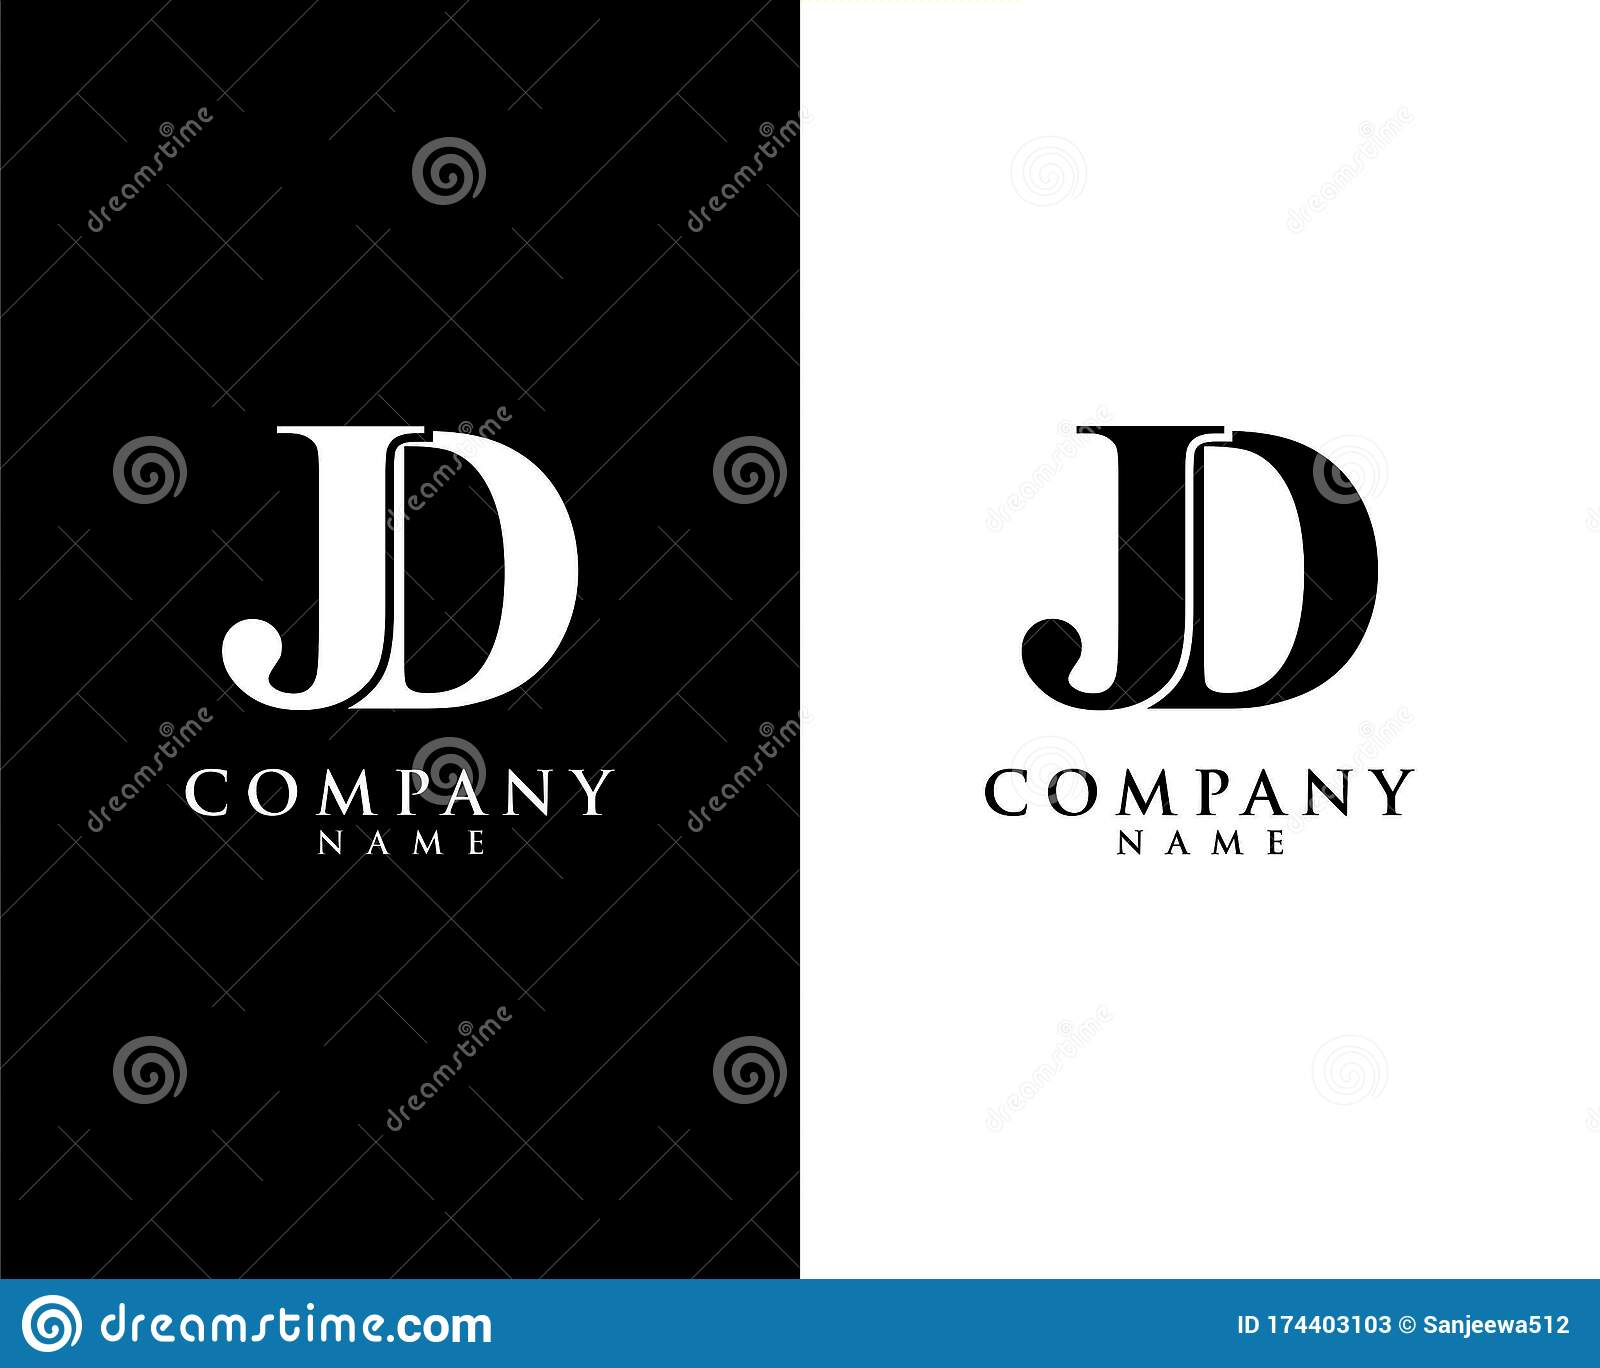 jd dj initial company name logo template vector stock vector illustration of elegant clean 174403103 https www dreamstime com jd dj initial company name logo template vector black white background image174403103